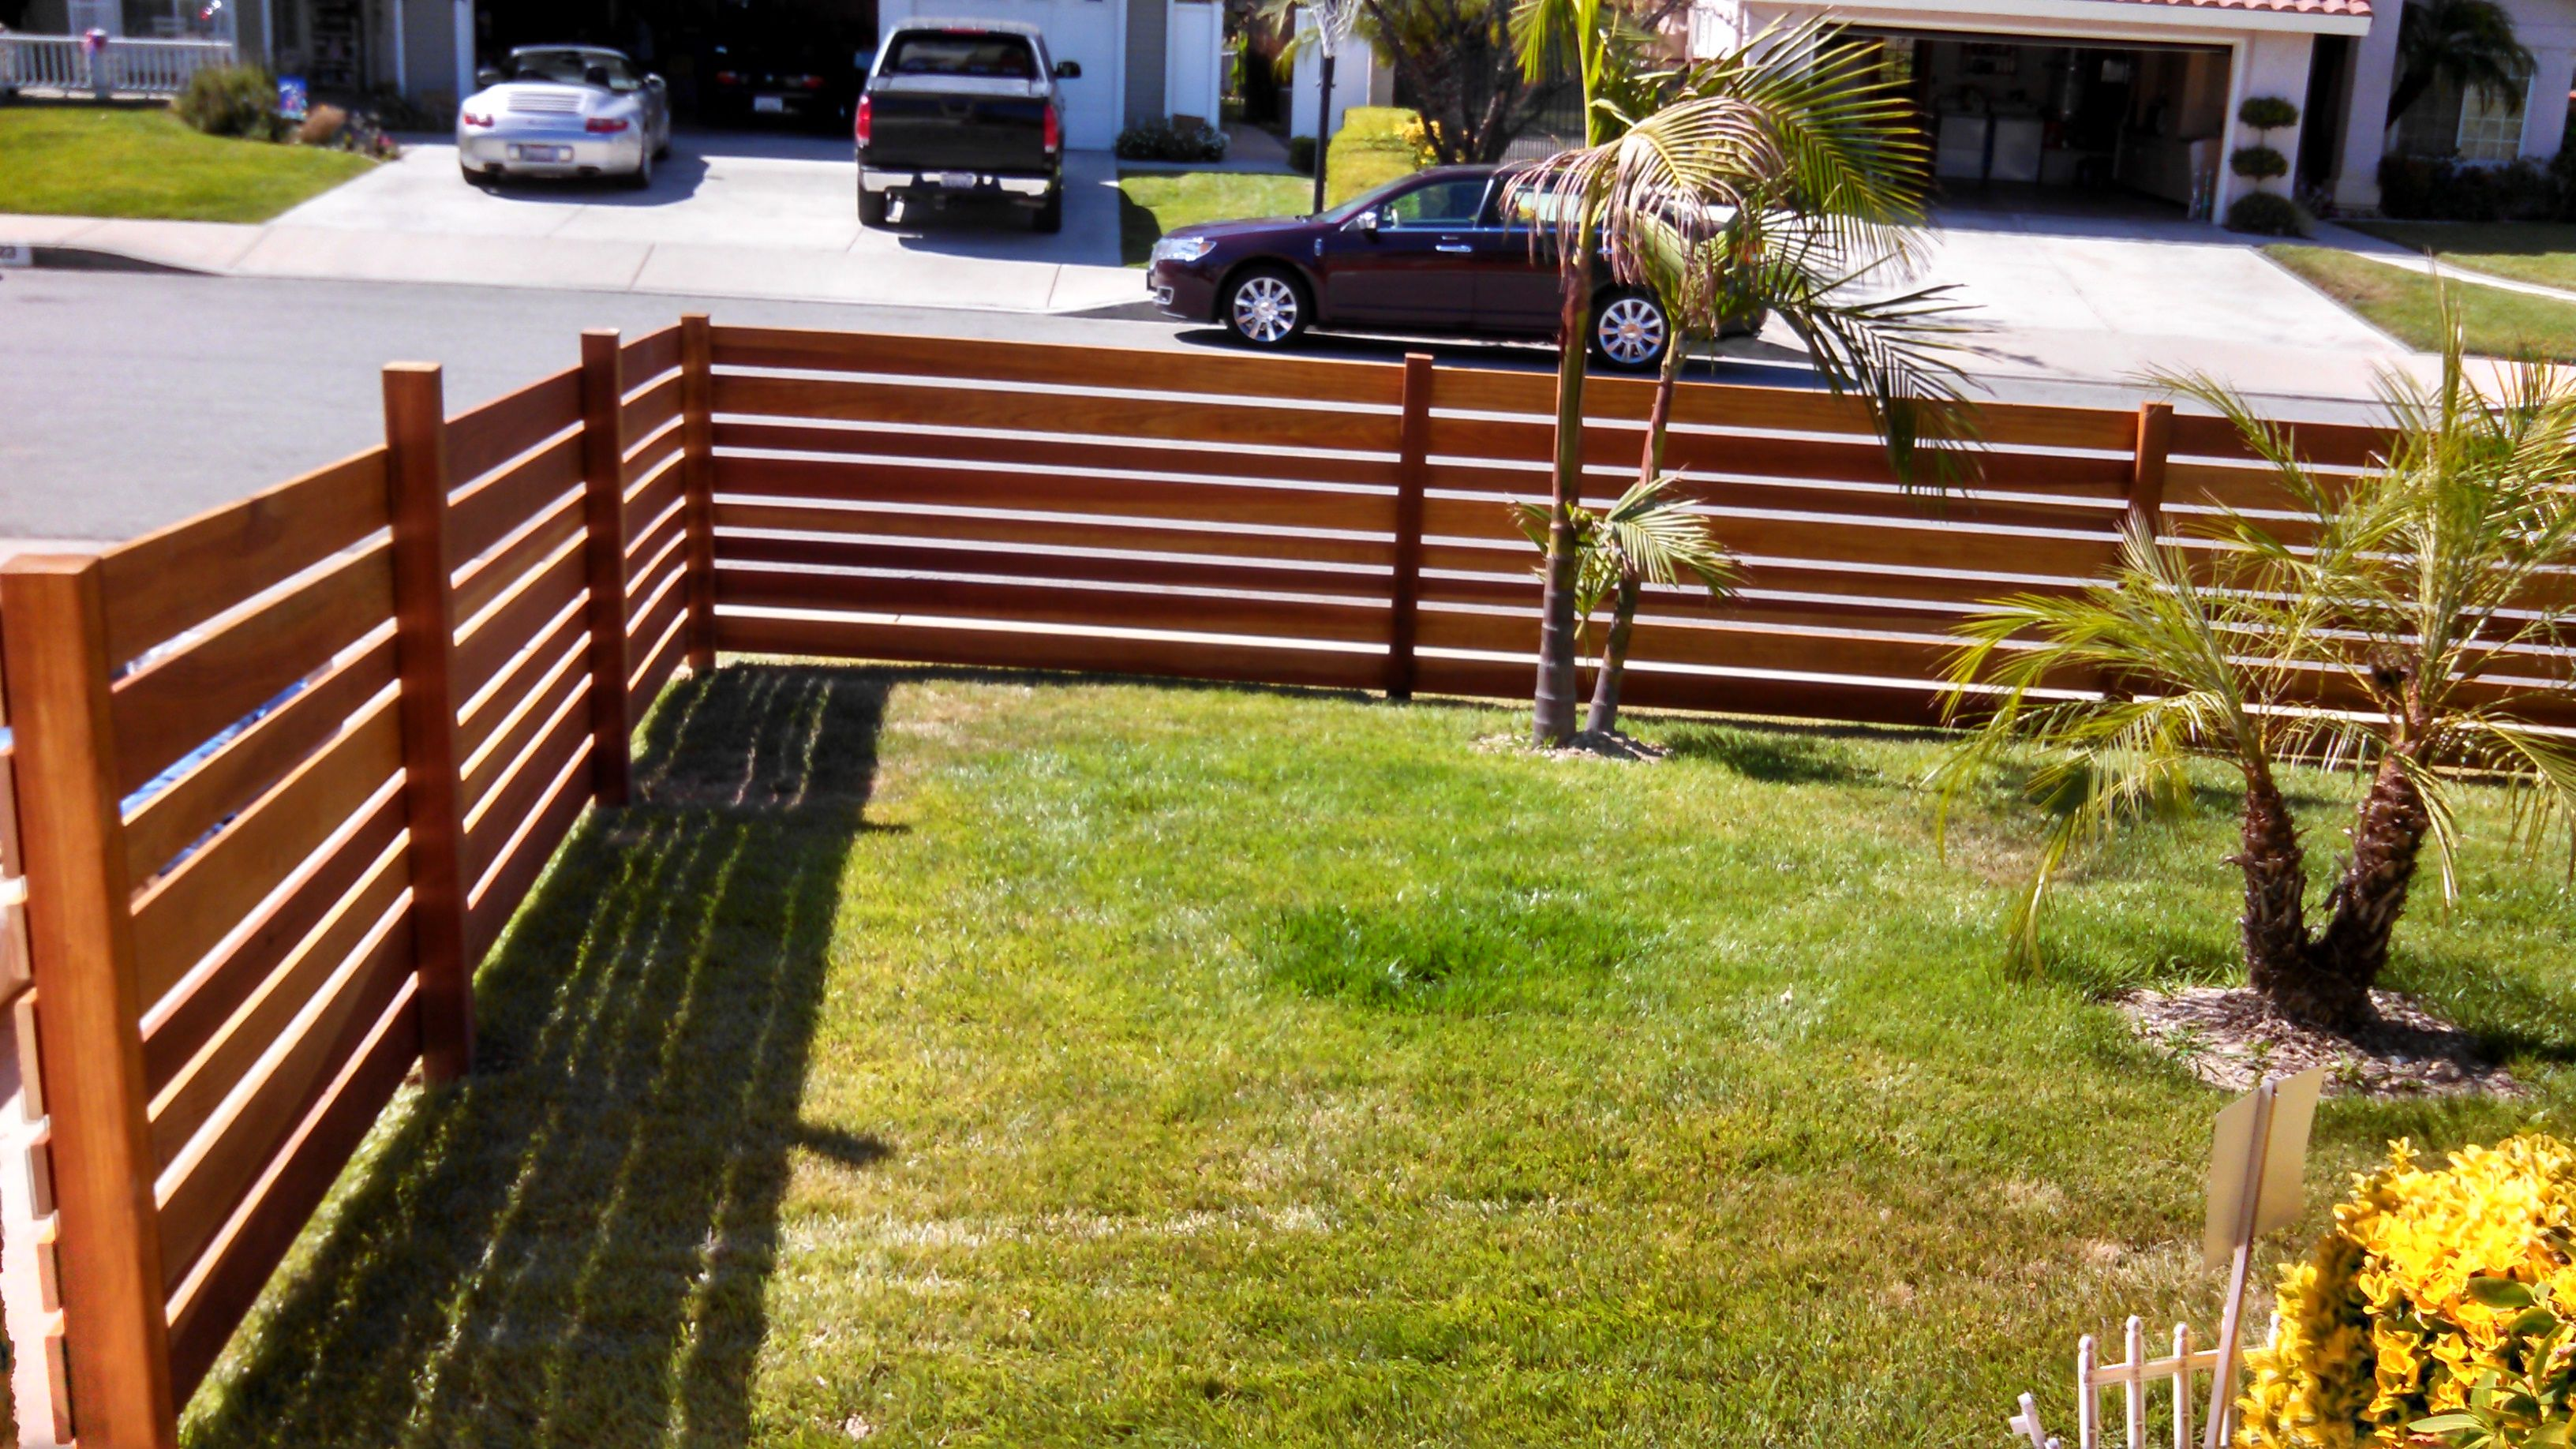 Chic red wood fence designs and redwood fence board grades petit chic red wood fence designs and redwood fence board grades baanklon Choice Image